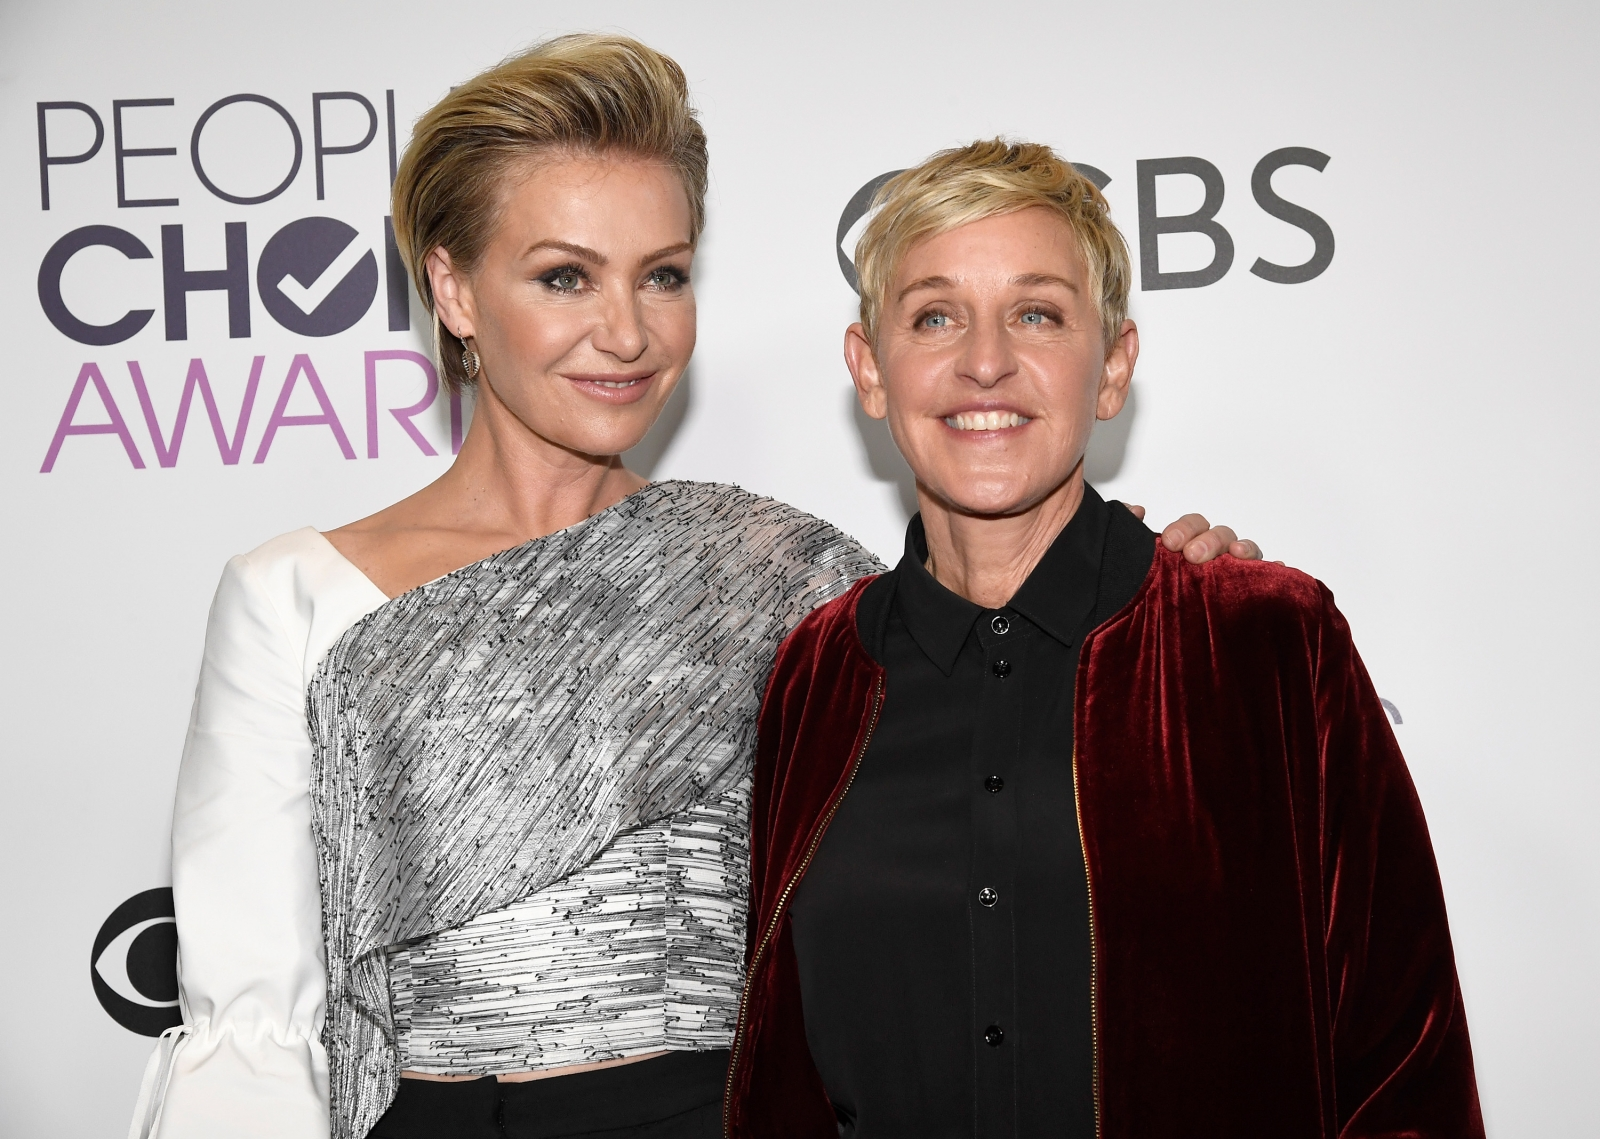 Genial Ellen DeGeneres And Portia De Rossi Got Married In 2008 Kevork  Djansezian/Getty